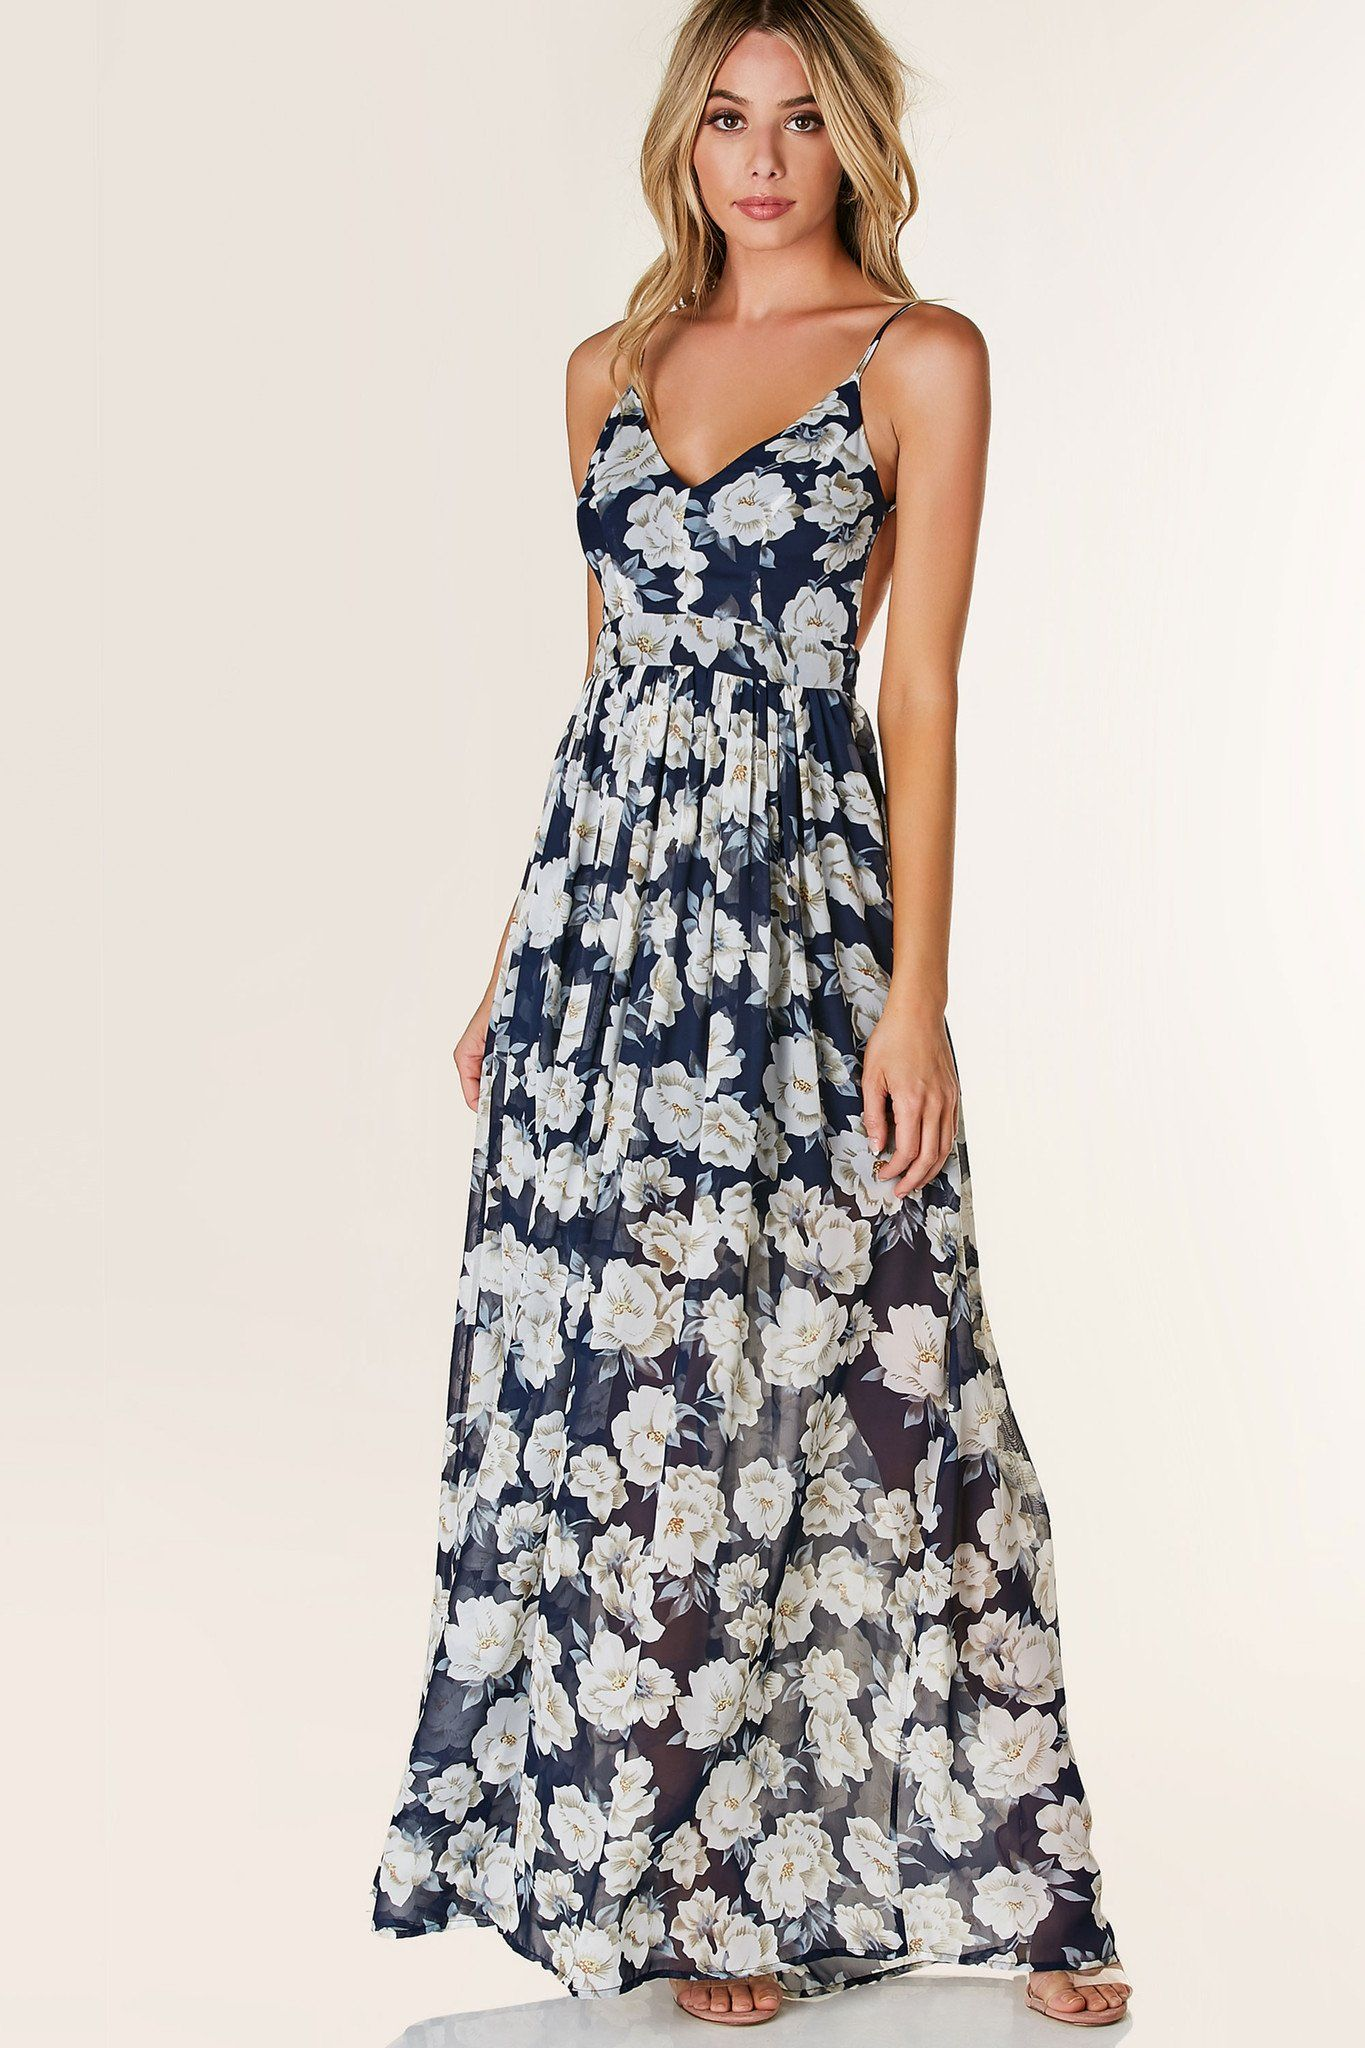 961d6dd53be Gorgeous V-neck maxi dress with adjustable shoulder straps and open back.  Fully lined with floral print throughout and hidden side zip closure.